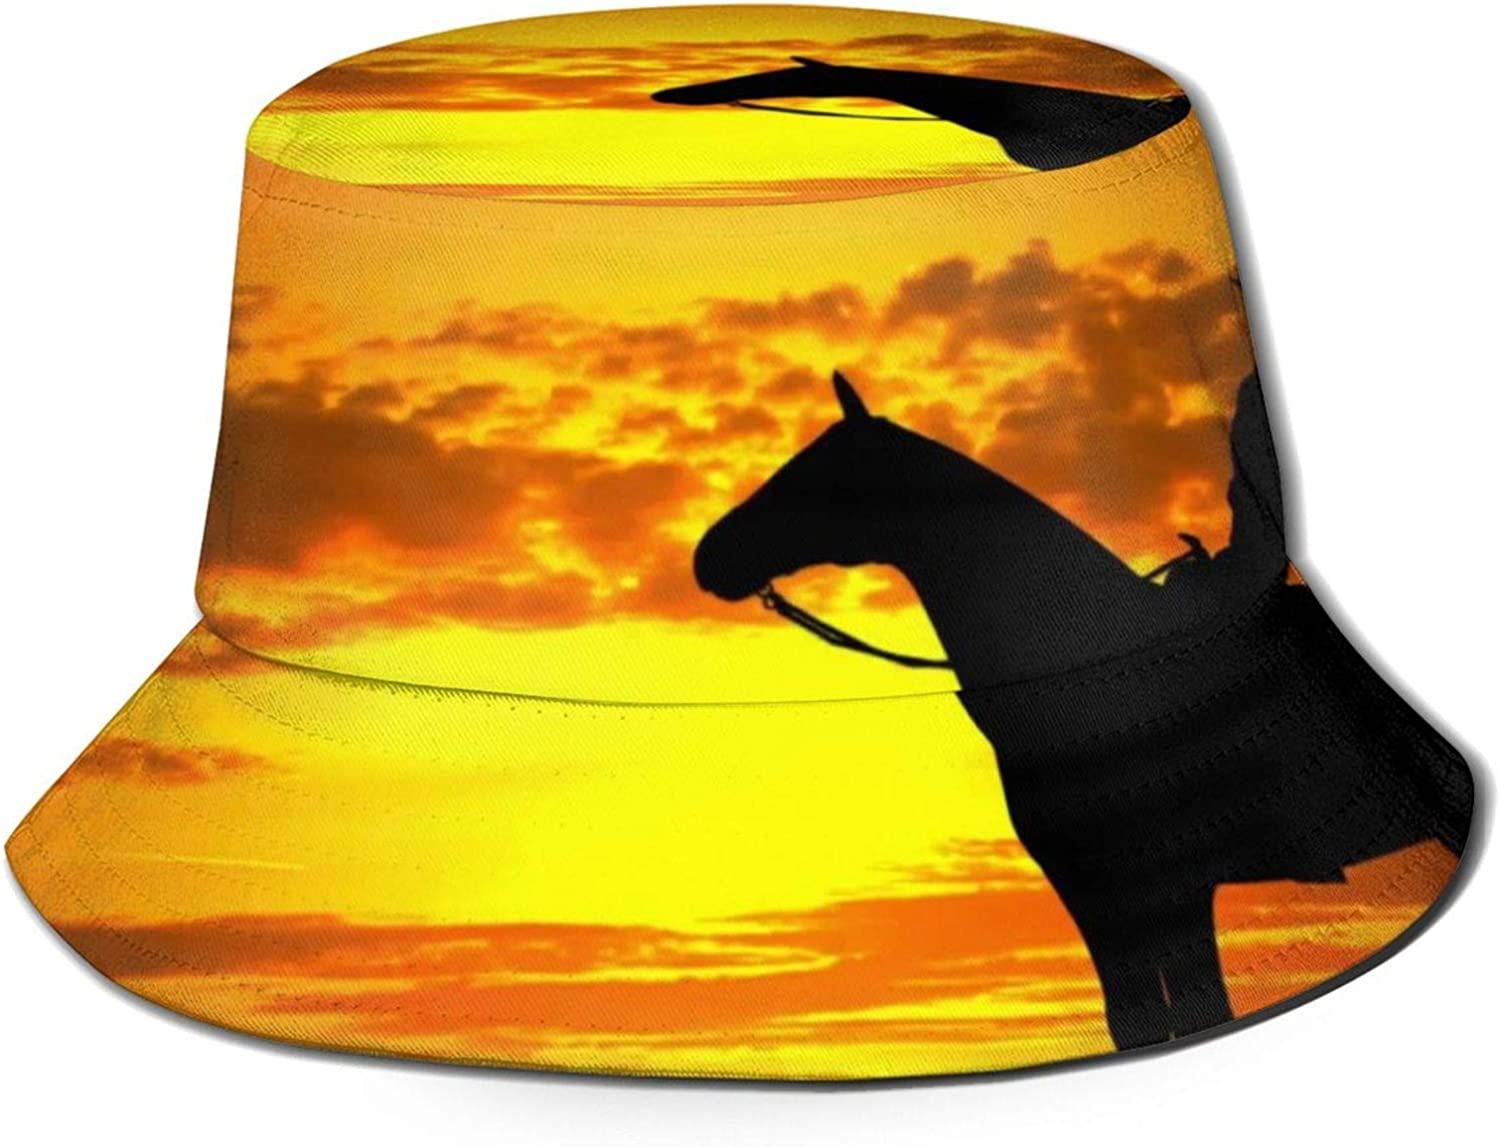 Silhouette of Cowboy On A Horse Bucket Hat Unisex Outdoor Summer Cap Packable Sun Hats for Hiking Beach Sports Black